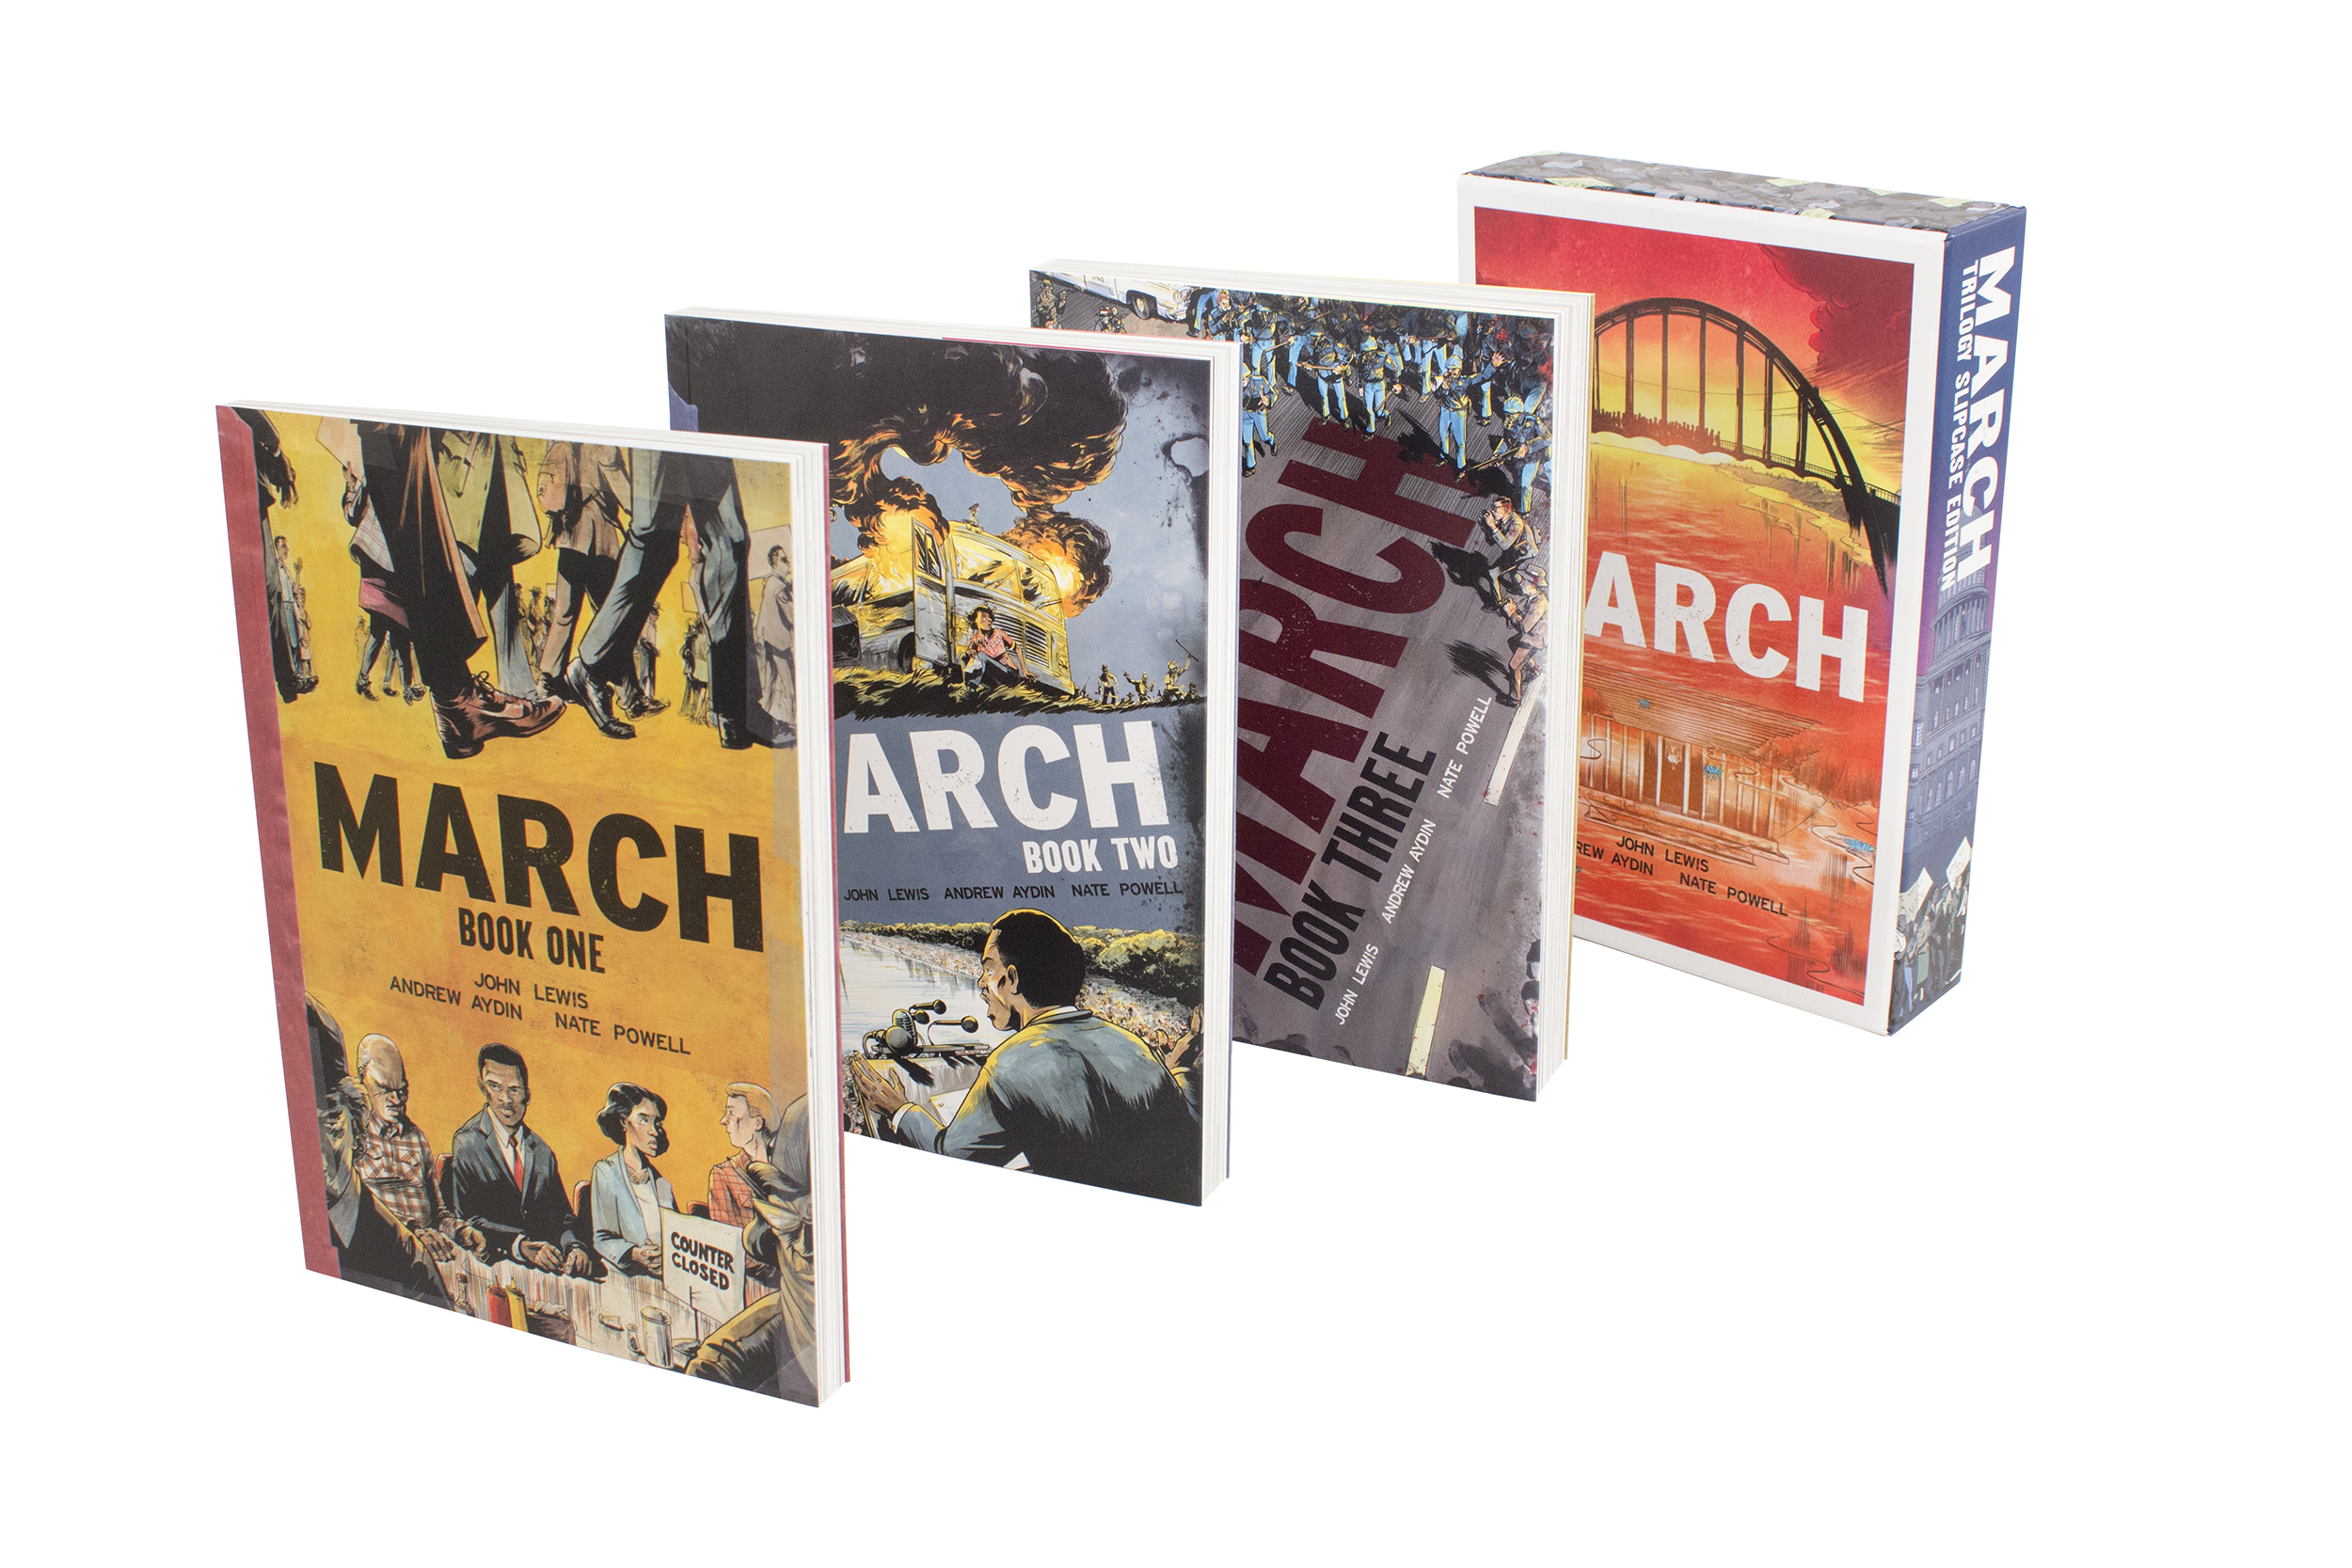 This is a trilogy of books entitled March, books 1, 2 and 3, by author John Lewis.